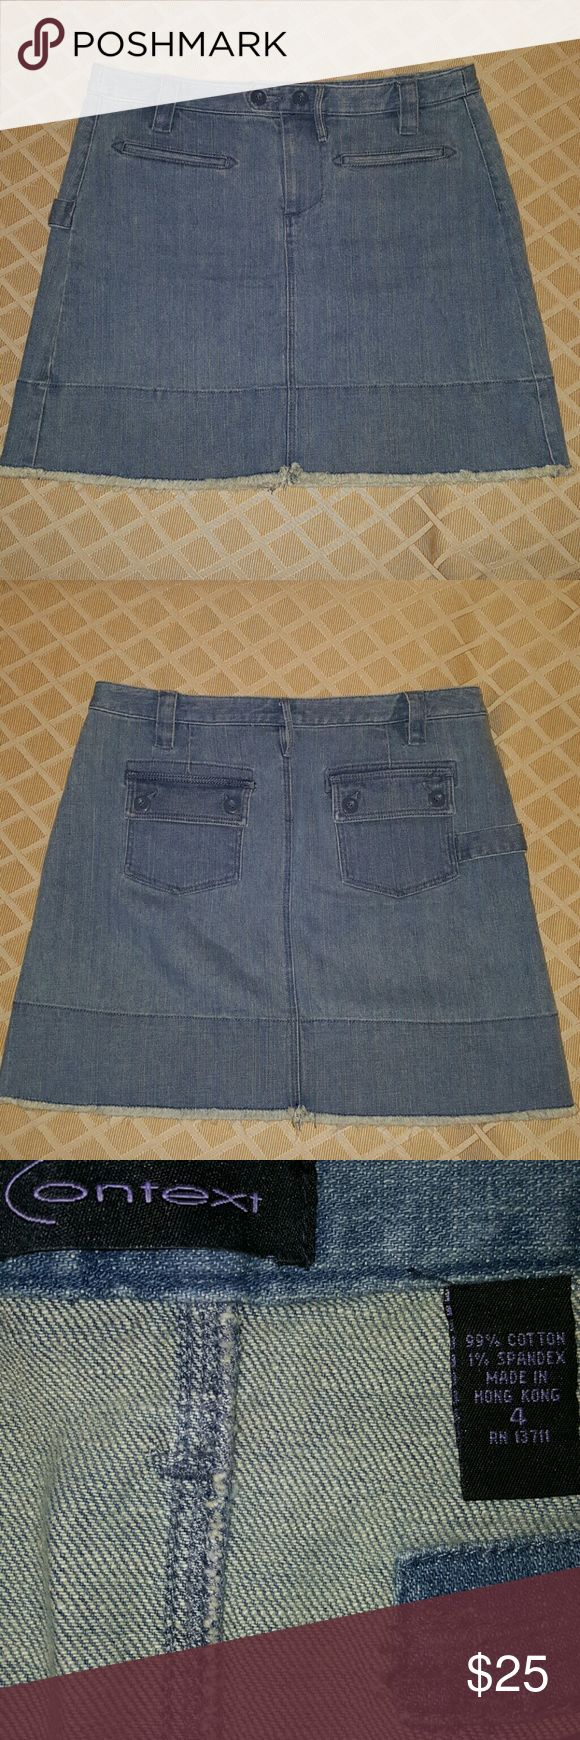 """Ladies Context Denim Skirt Size 4 Like new Context Denim Skirt, slight give to denim 1% spandex. Very chic and fashionable. Midi skirt approx 2"""" above knee. Stonewash blue, frayed trim, button and zip, pockets and belt loops. Context Skirts Midi"""